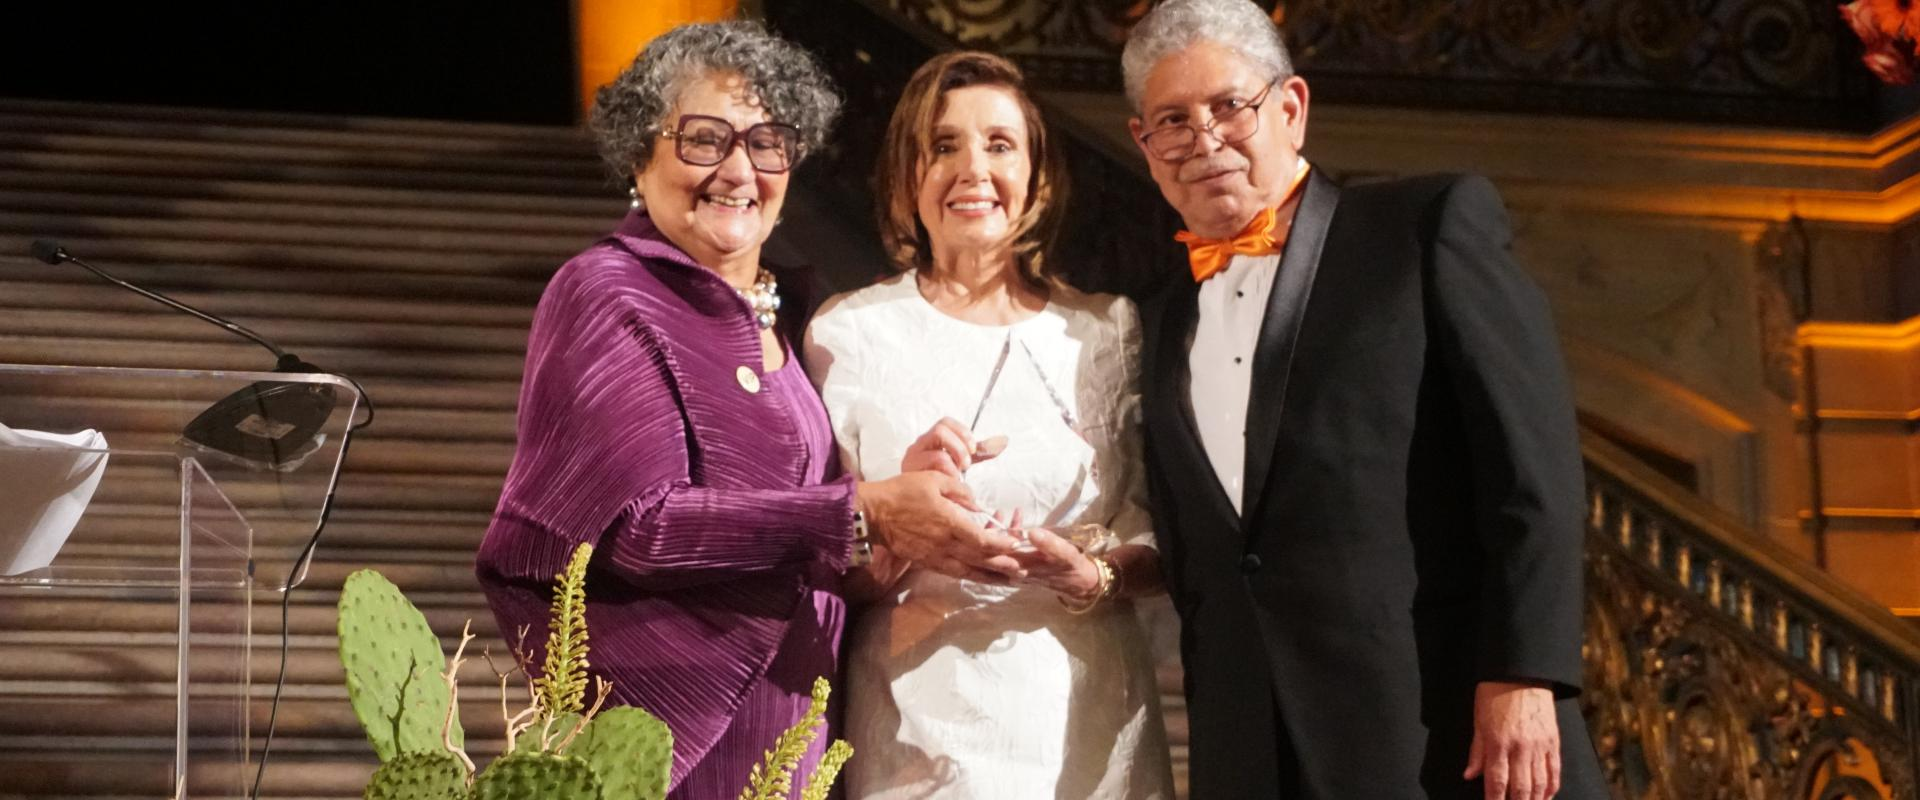 Congresswoman Pelosi received the Mission Neighborhood Center's 2019 Legacy Award from Sam Ruiz and Beverly Hayon during their 60th Anniversary Gala at San Francisco City Hall, celebrating the organization's legacy and looking to the future.